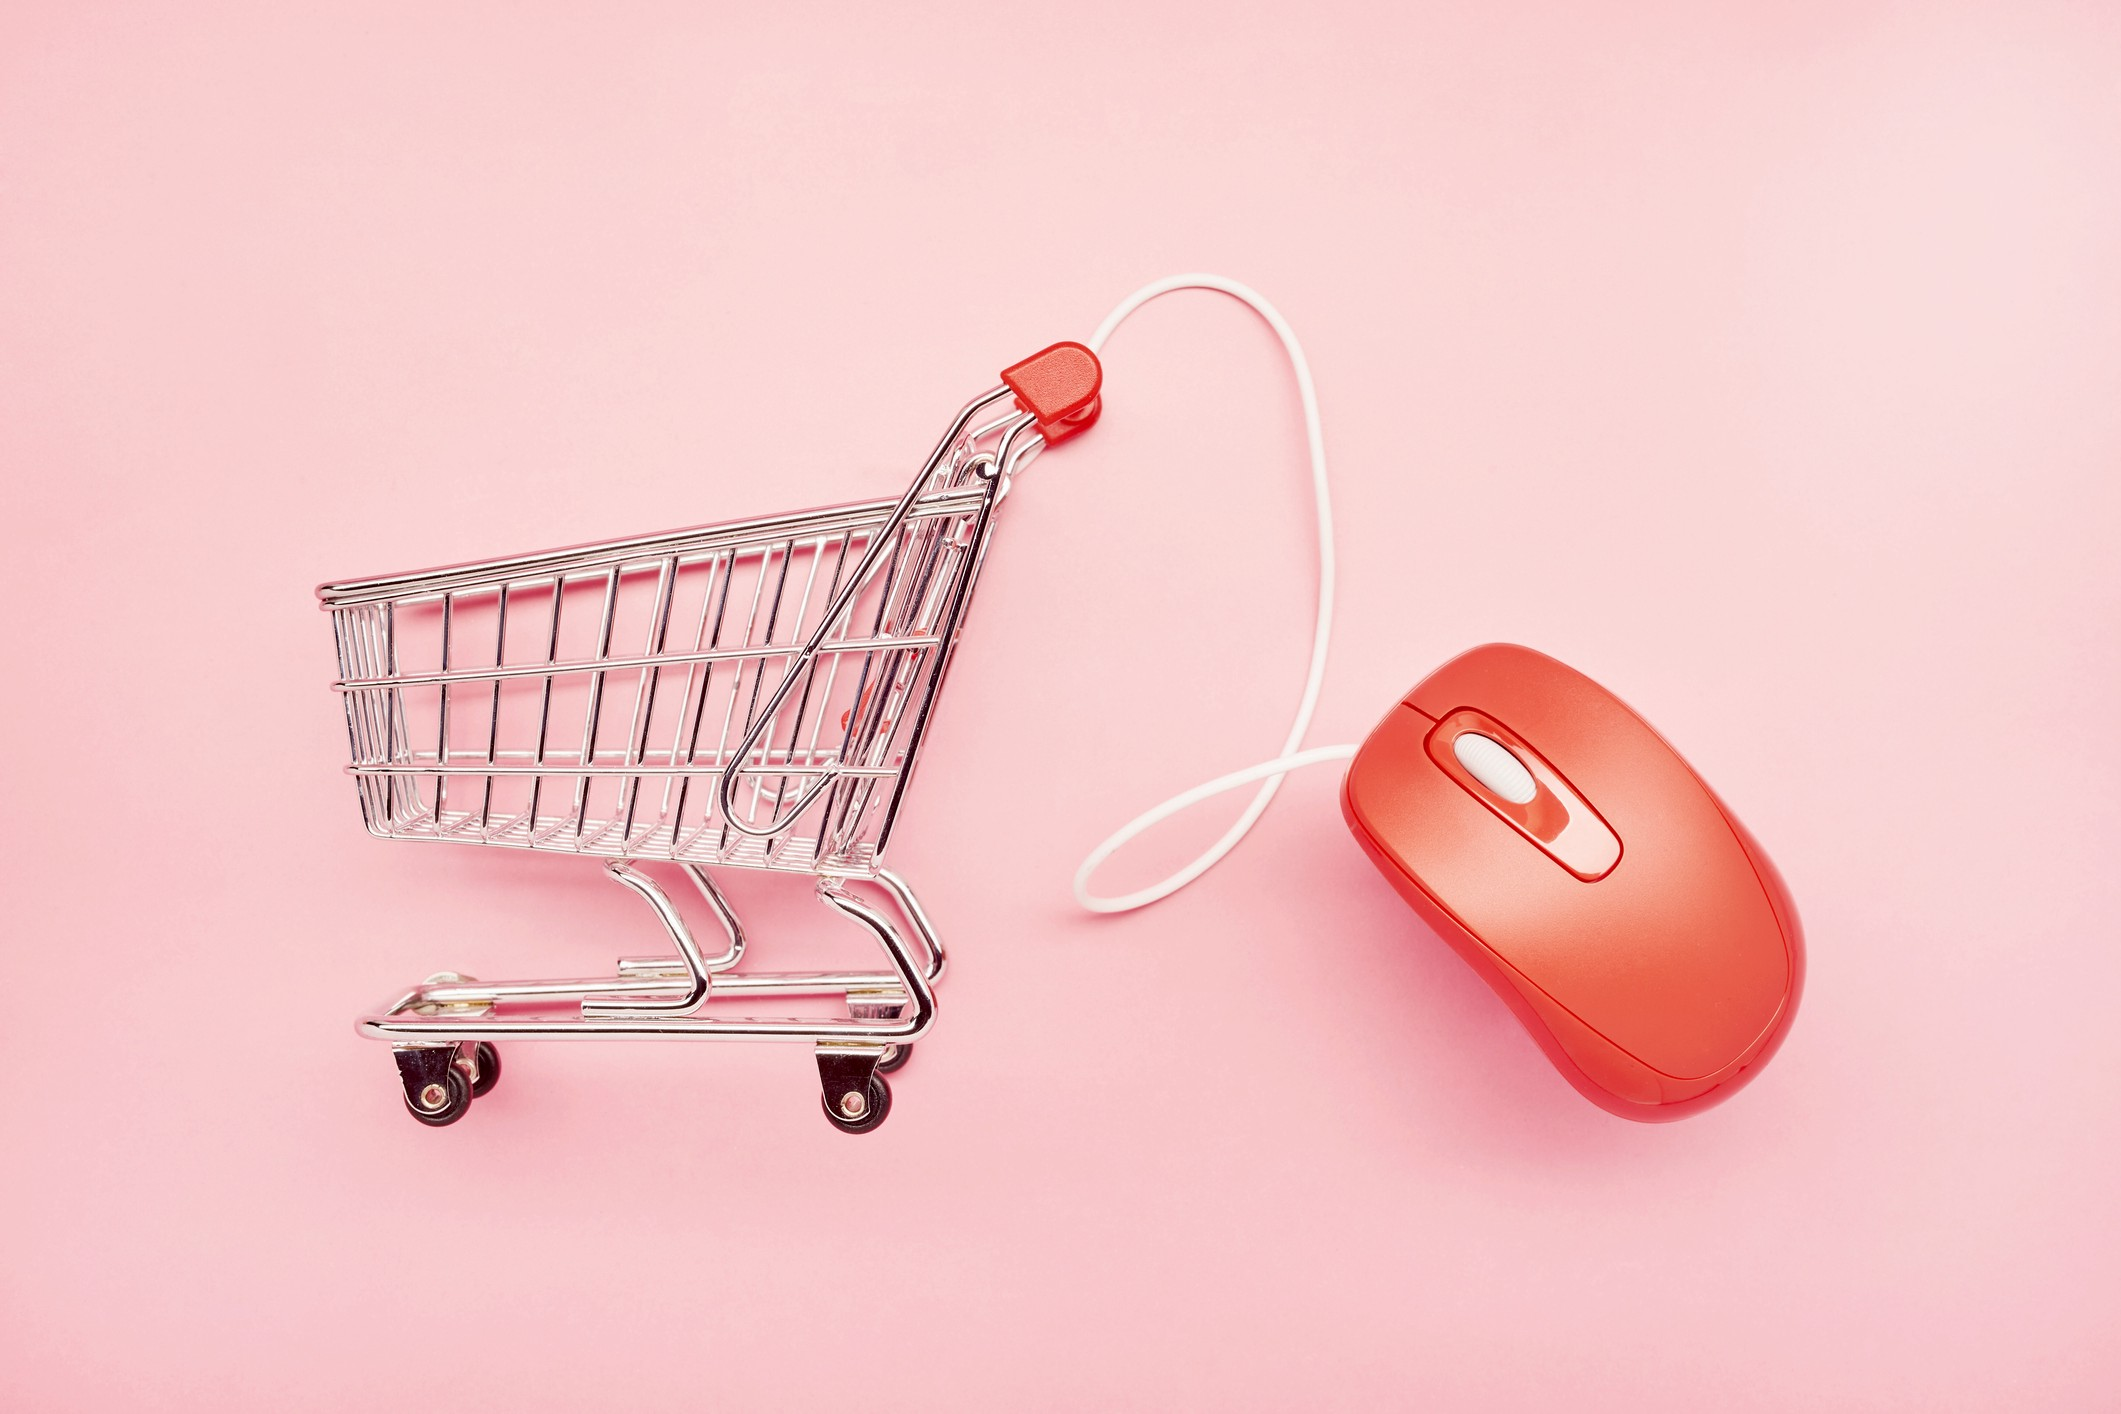 A small shopping cart and red computer mouse on pink background, symbolizing online shopping.